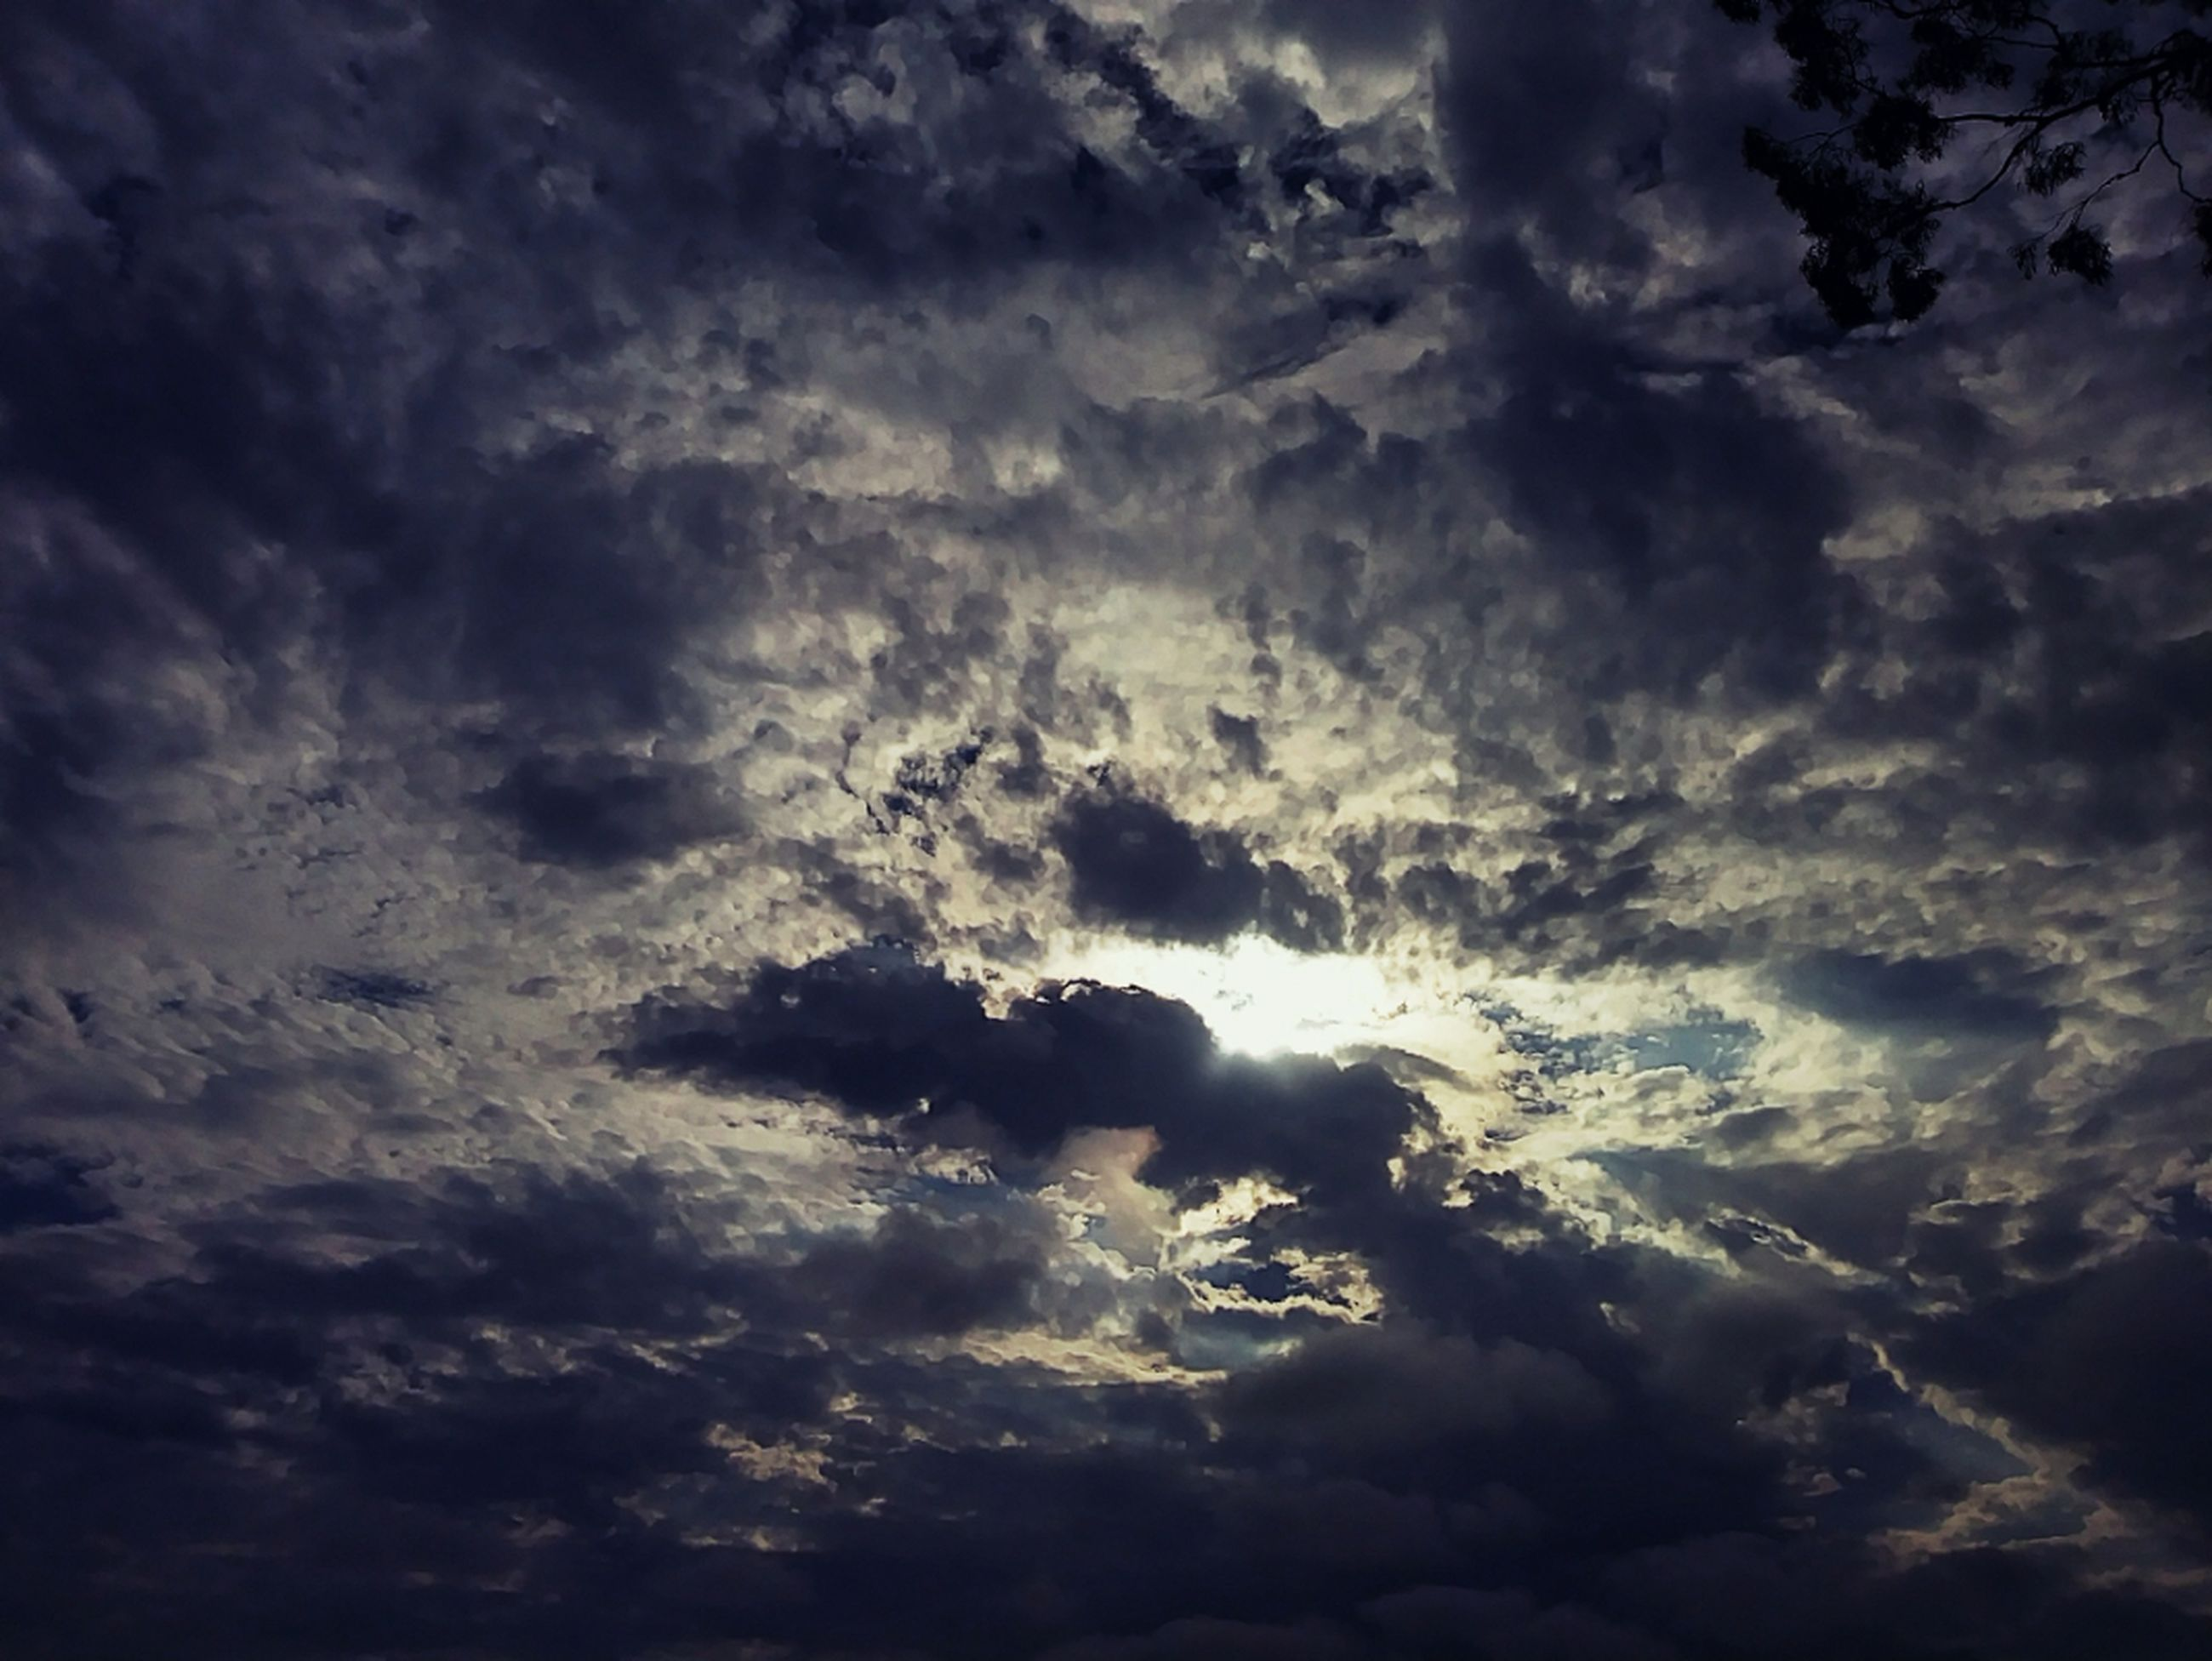 cloud - sky, sky, beauty in nature, nature, cloudscape, low angle view, weather, scenics, sky only, dramatic sky, atmospheric mood, tranquility, meteorology, majestic, tranquil scene, idyllic, storm cloud, environment, backgrounds, no people, awe, storm, cirrus, full frame, outdoors, sunset, day, scenery